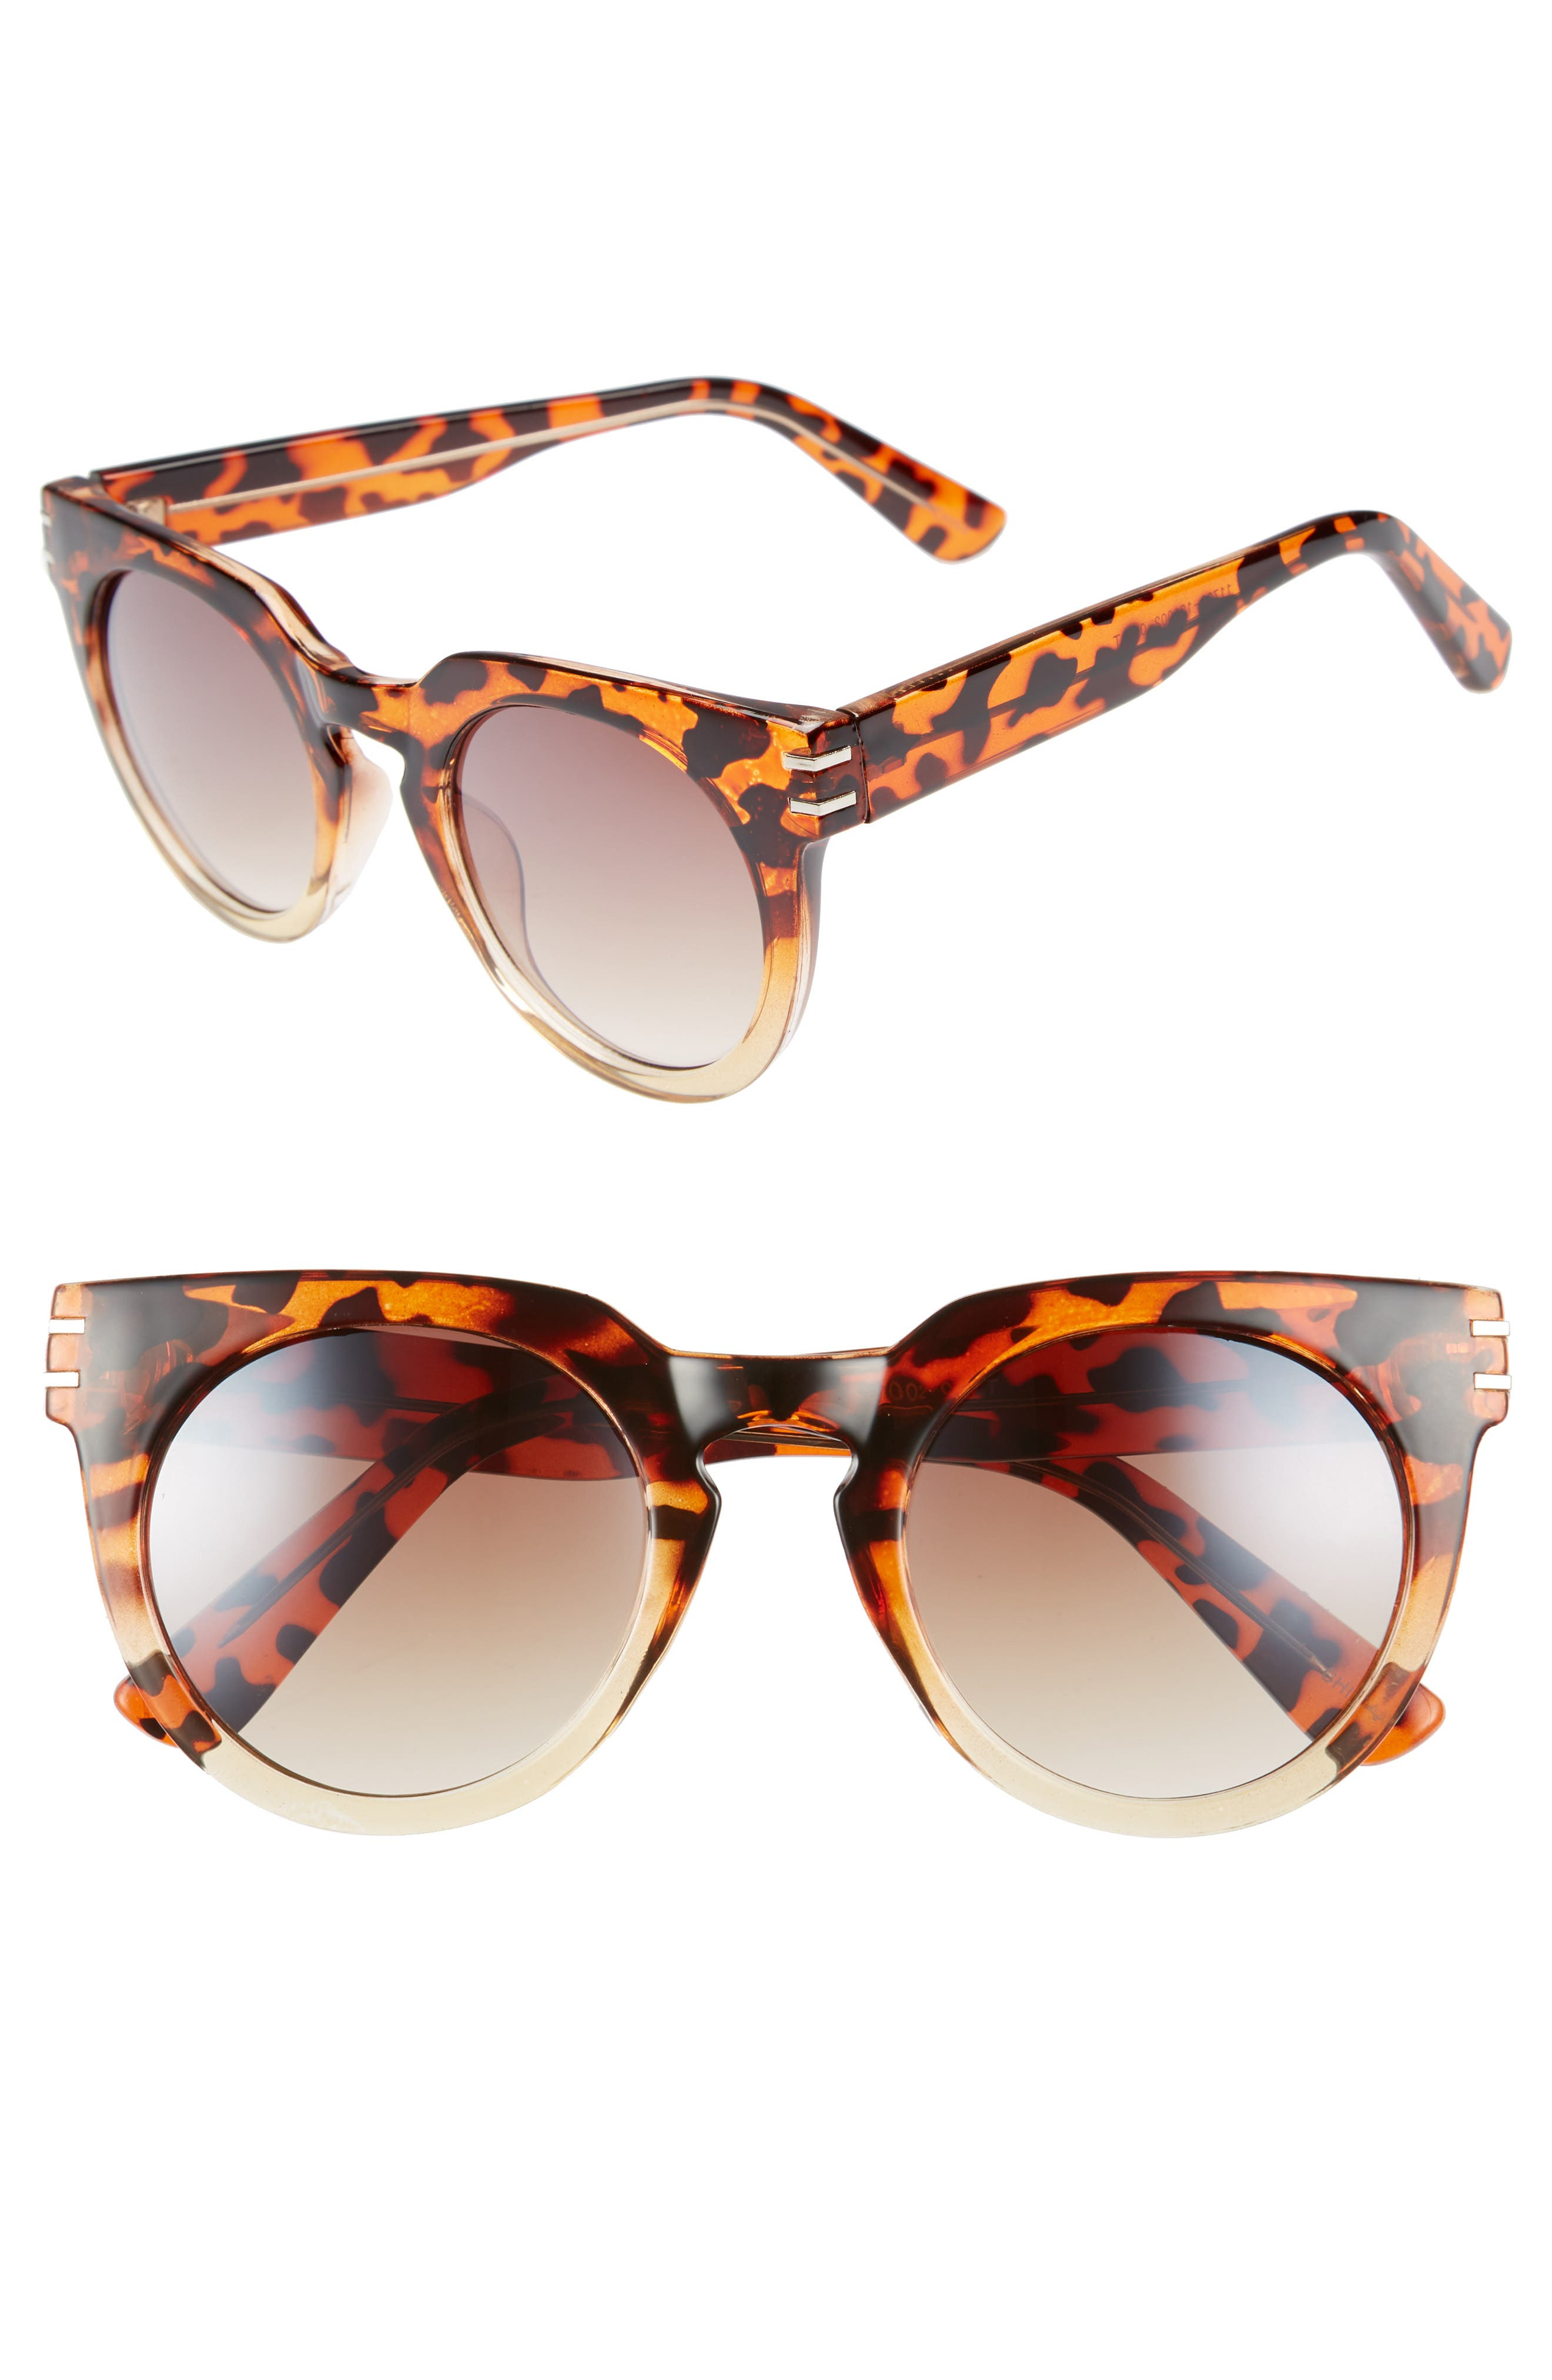 50mm Round Sunglasses,                         Main,                         color, Leopard/ Brown